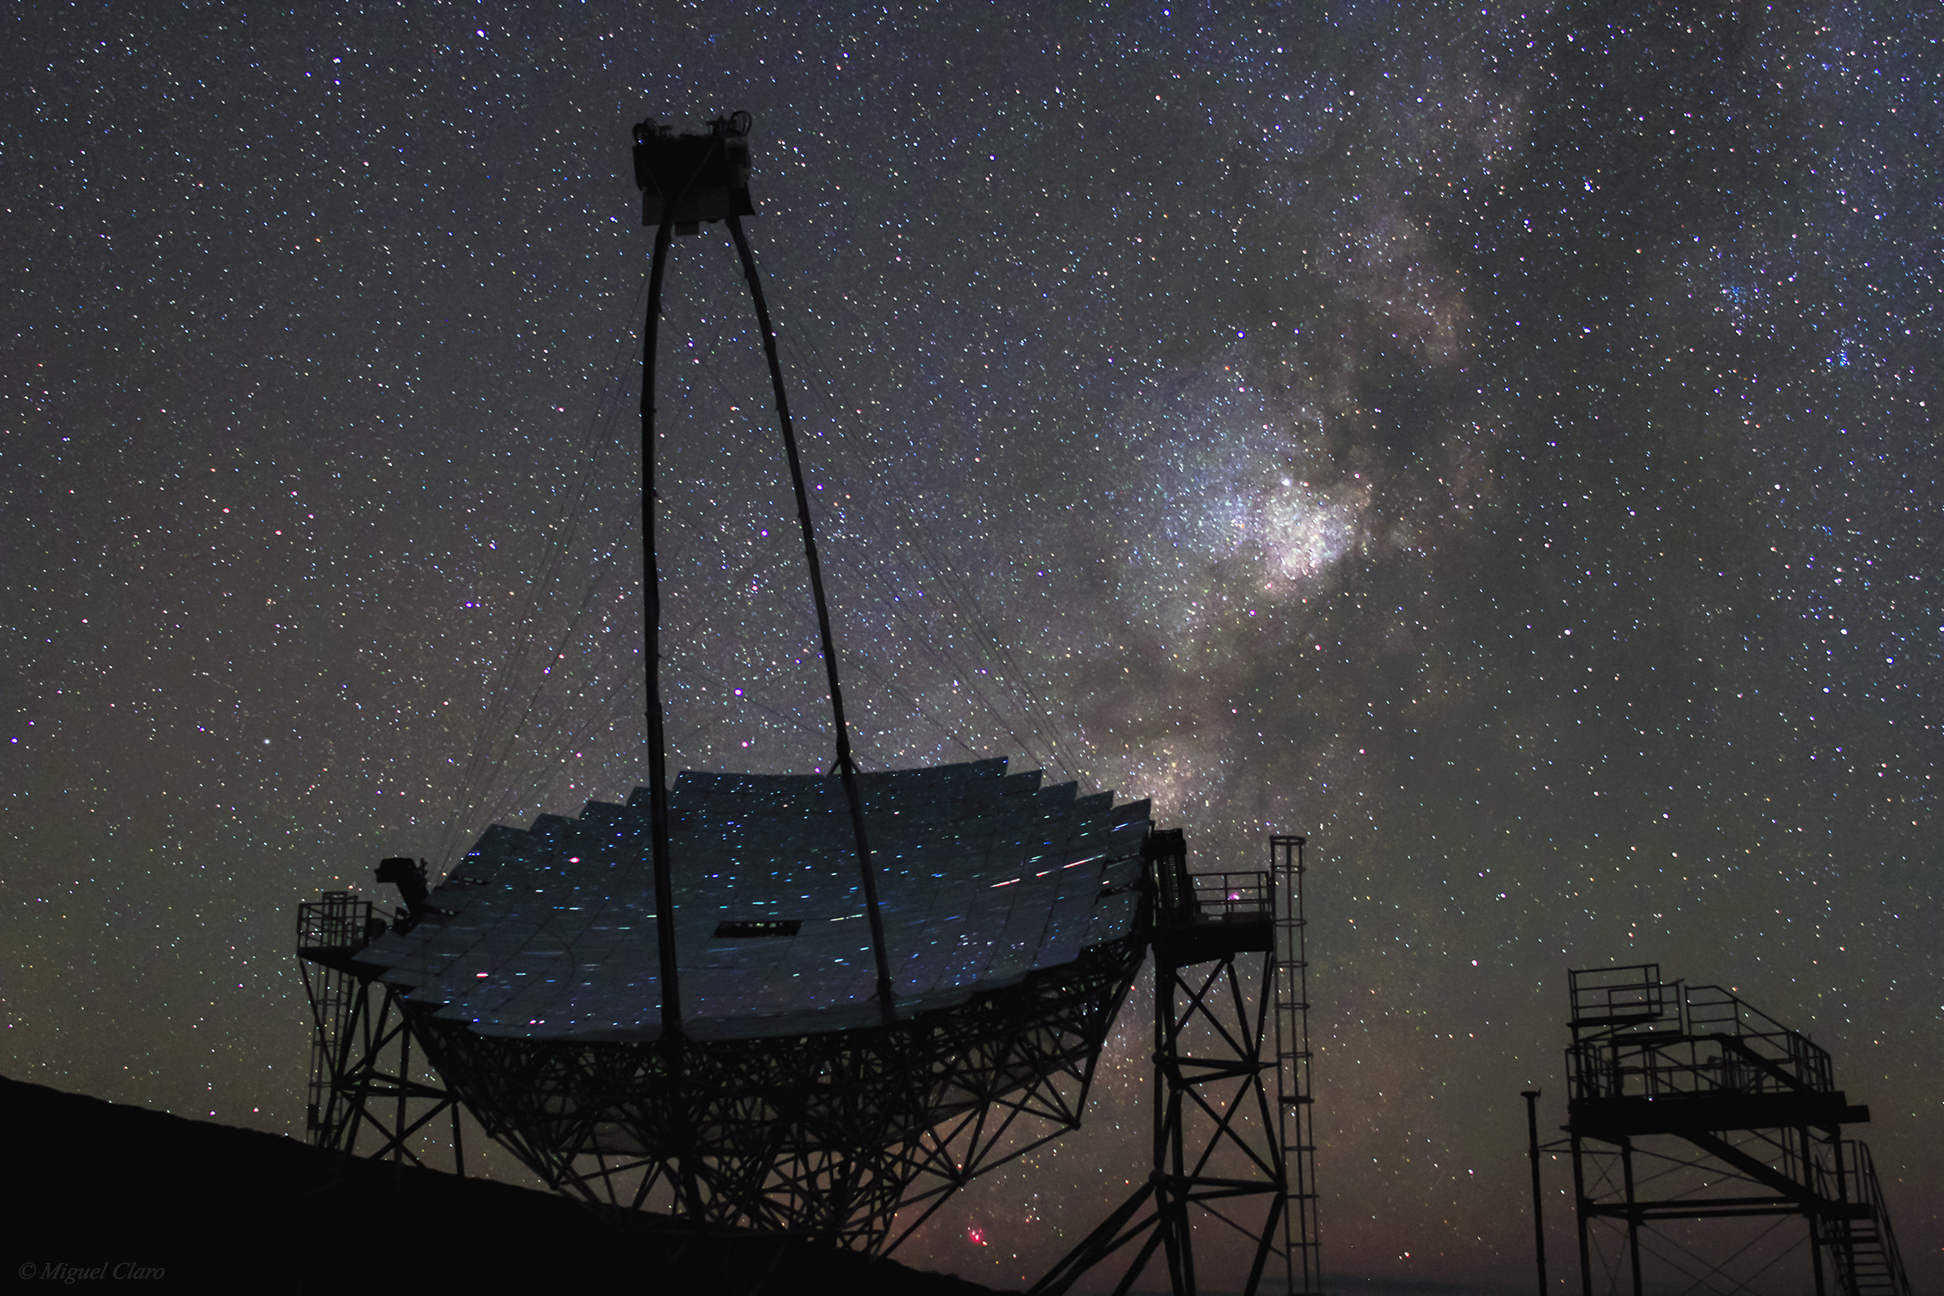 MAGIC telescope in La Palma and Milky Way by Miguel Claro - AstroMaster La Palma 2013